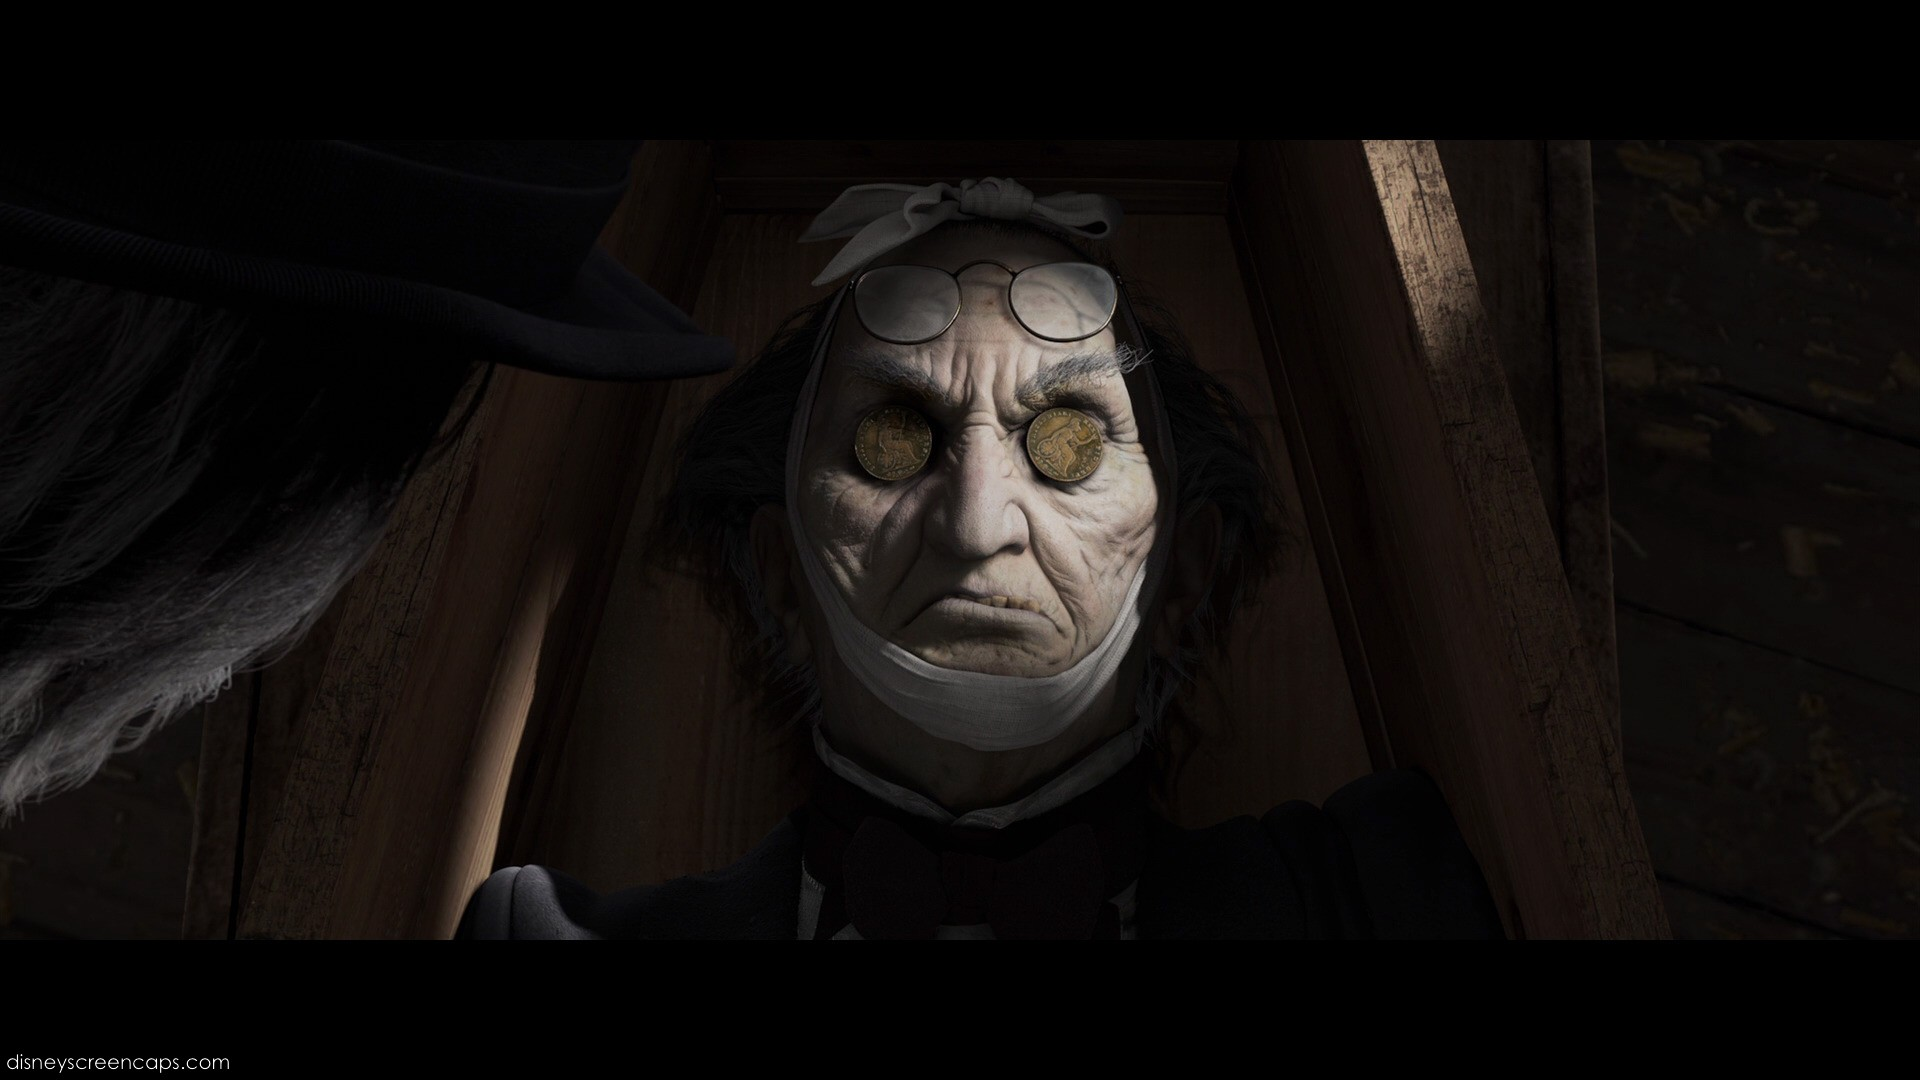 Jacob Marley/Gallery | Disney Wiki | FANDOM powered by Wikia